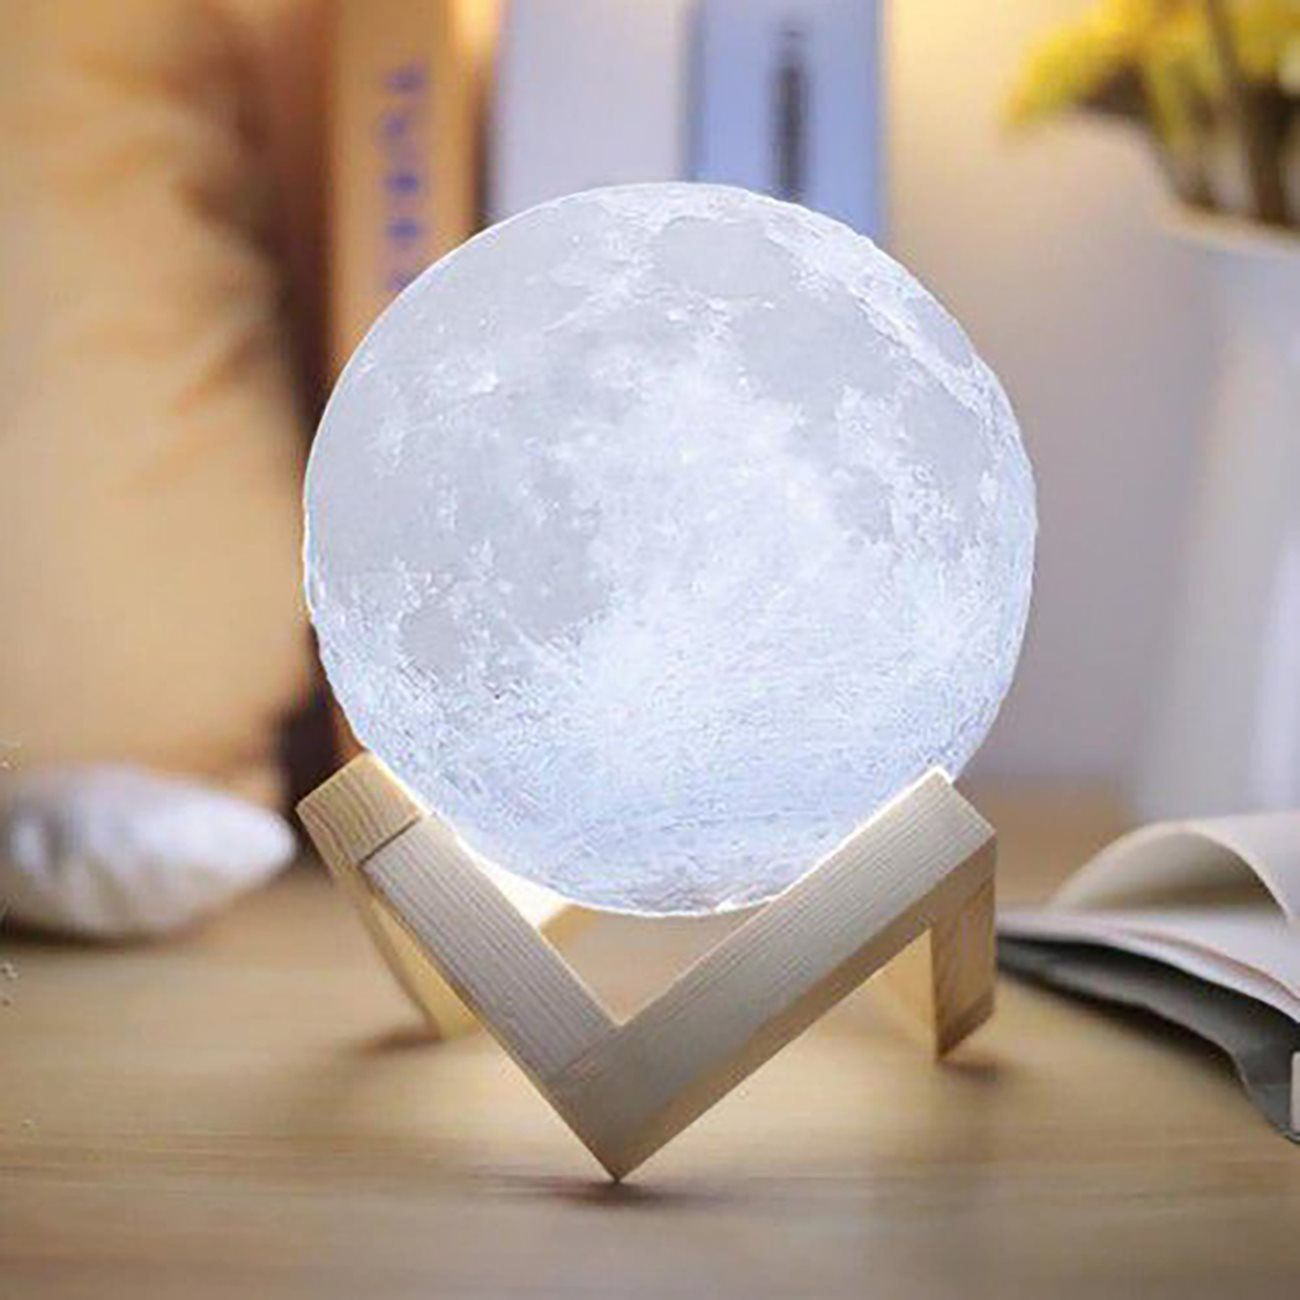 Moon Light Colored 3d Moon Light Moon Light With Stand 4 7 Etsy In 2020 Night Light Lamp Moon Nightlight Nightstand Lamp